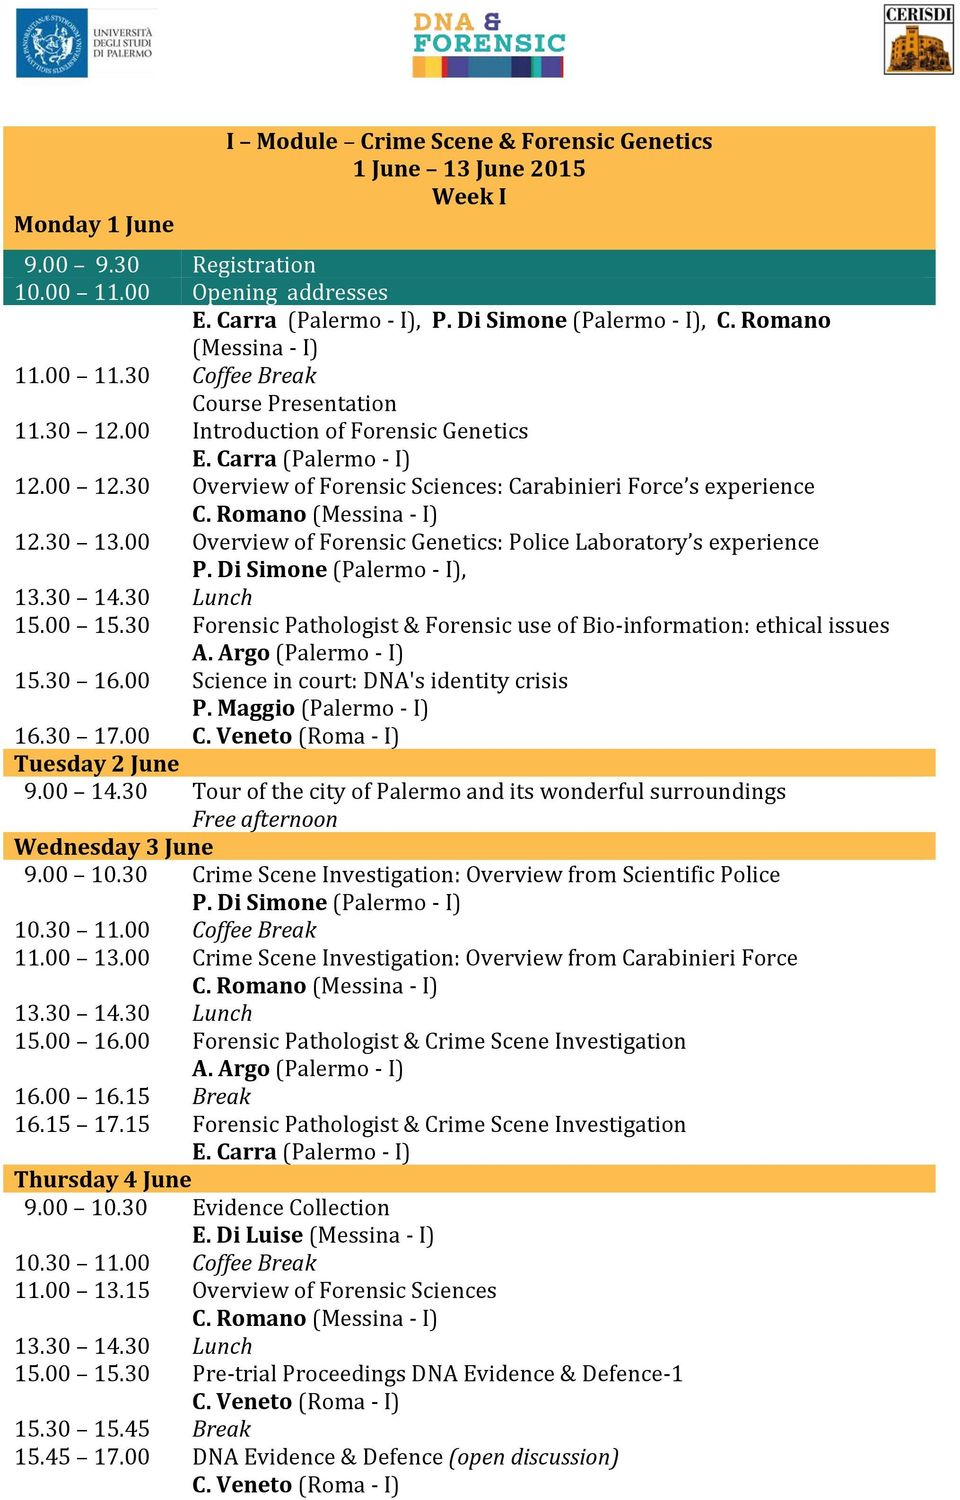 00 15.30 Forensic Pathologist & Forensic use of Bio-information: ethical issues A. Argo (Palermo - I) 15.30 16.00 Science in court: DNA's identity crisis P. Maggio (Palermo - I) 16.30 17.